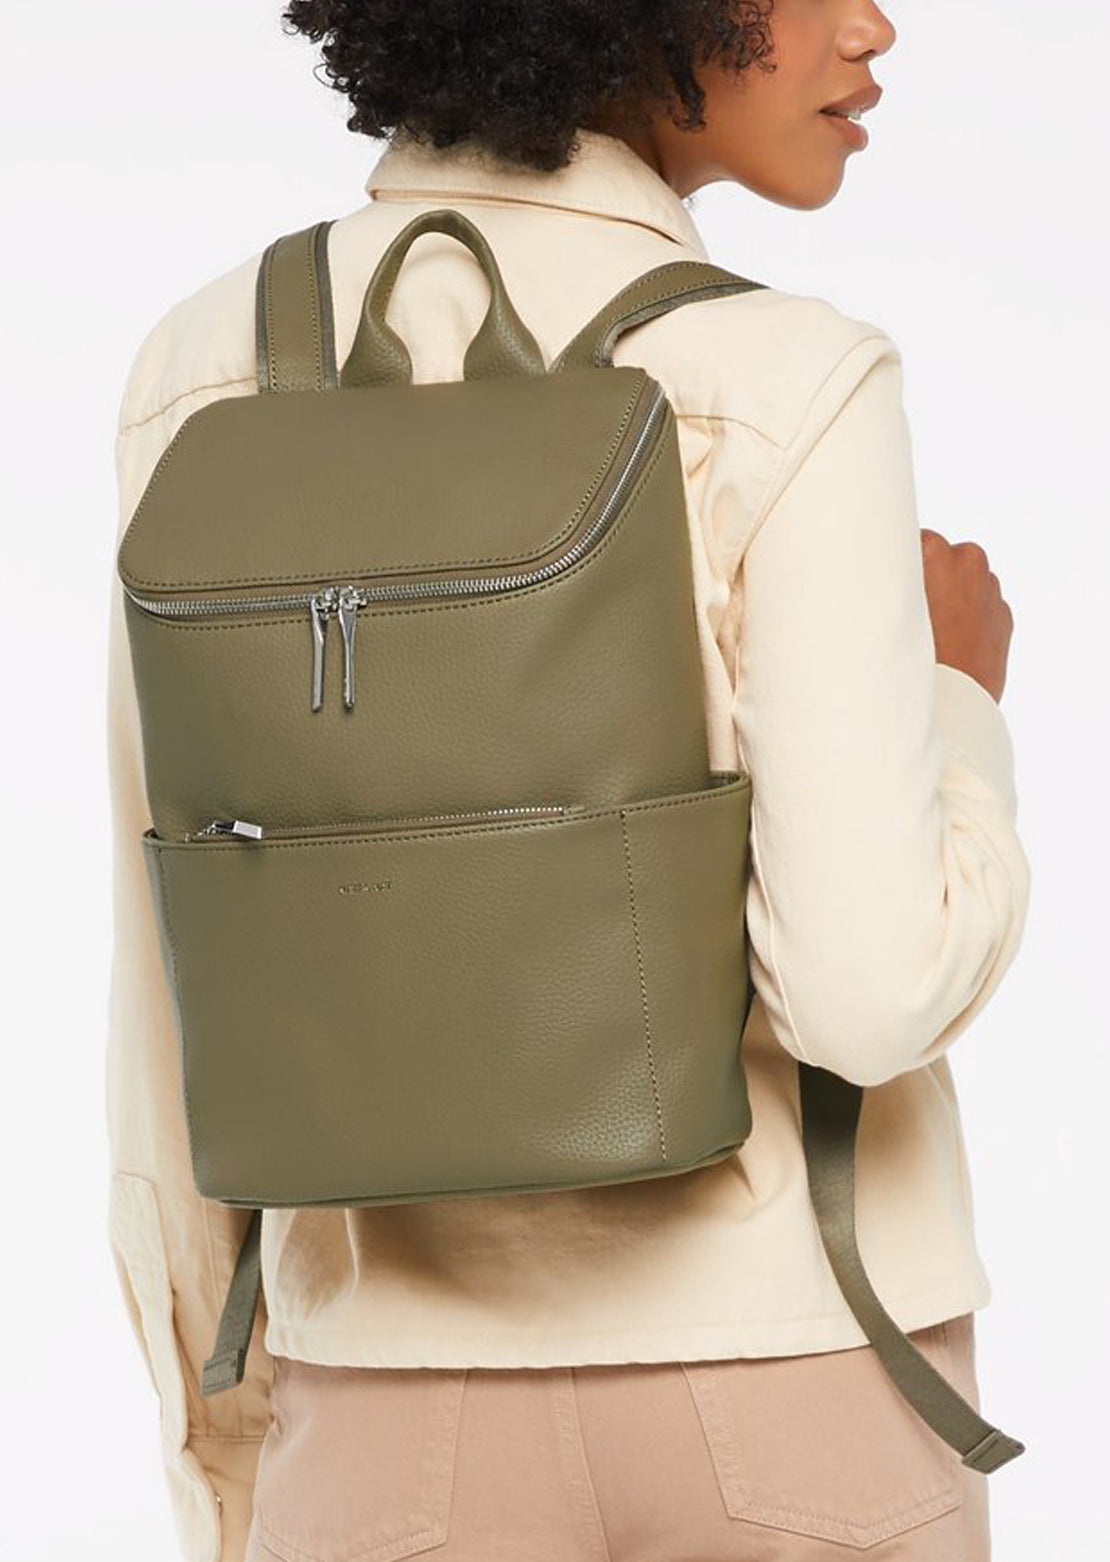 Matt & Nat Brave Purity Backpack Mineral